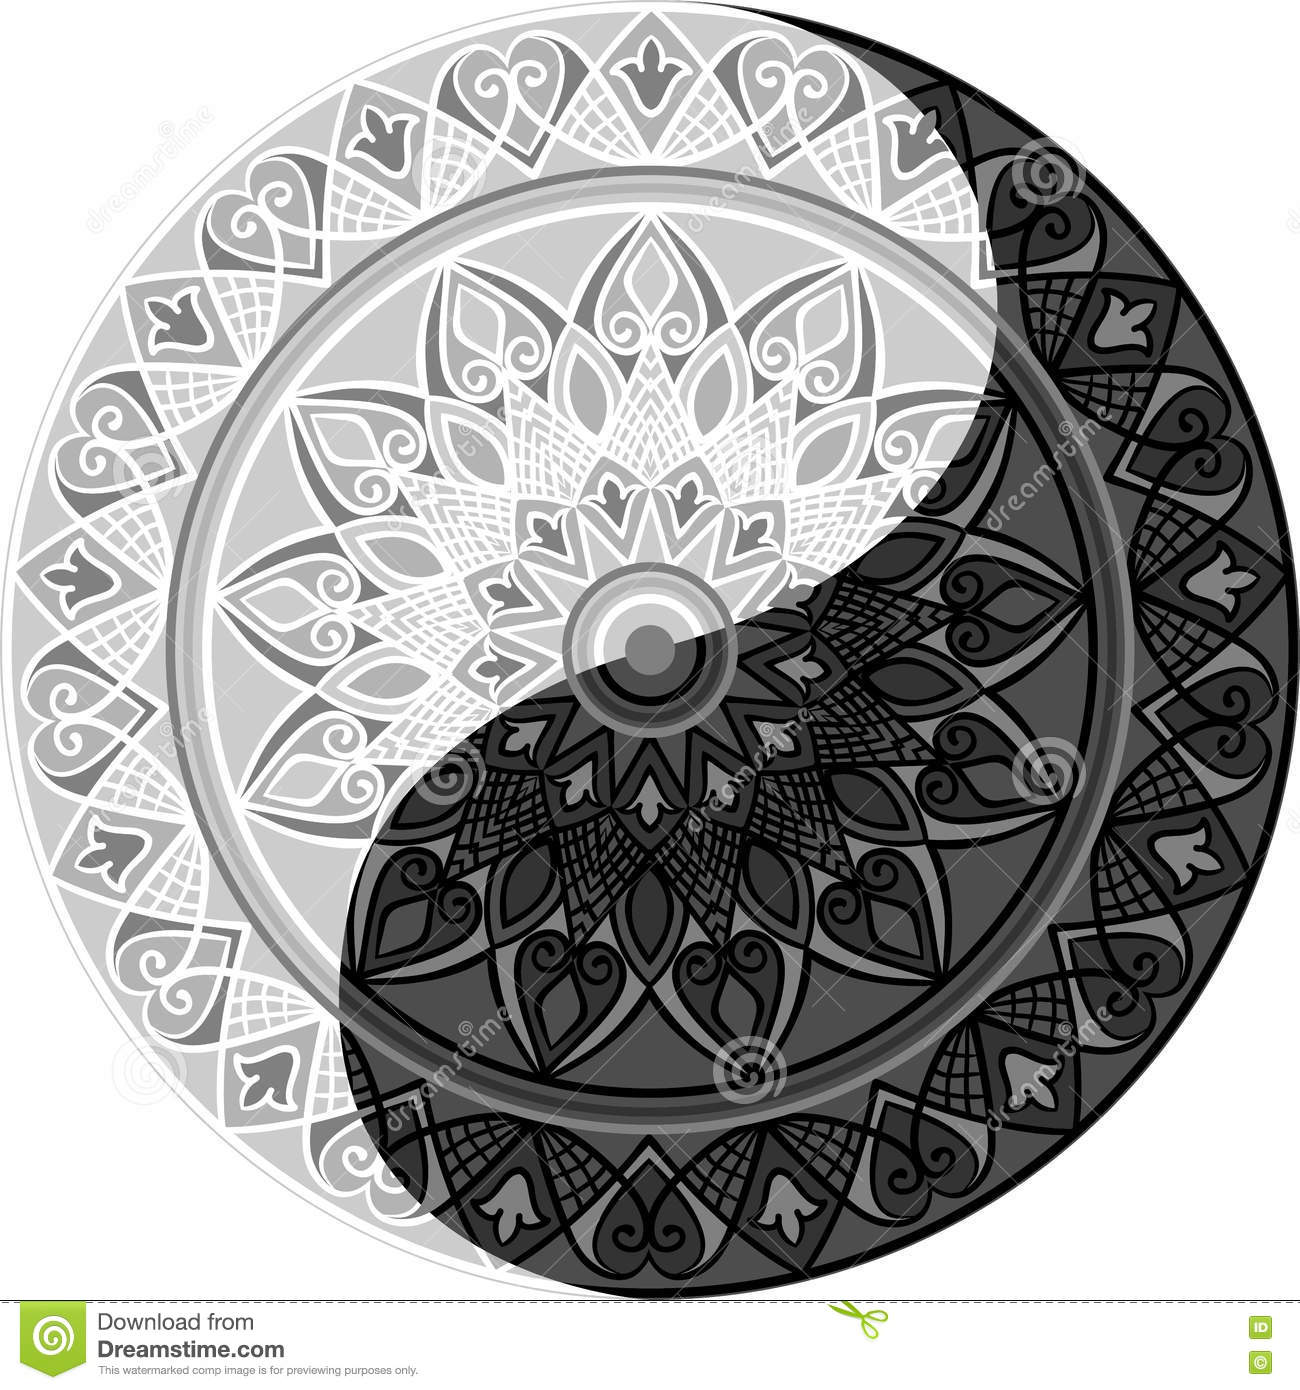 Mandala Yin Yang Stock Vector Illustration Of Balance 73921536